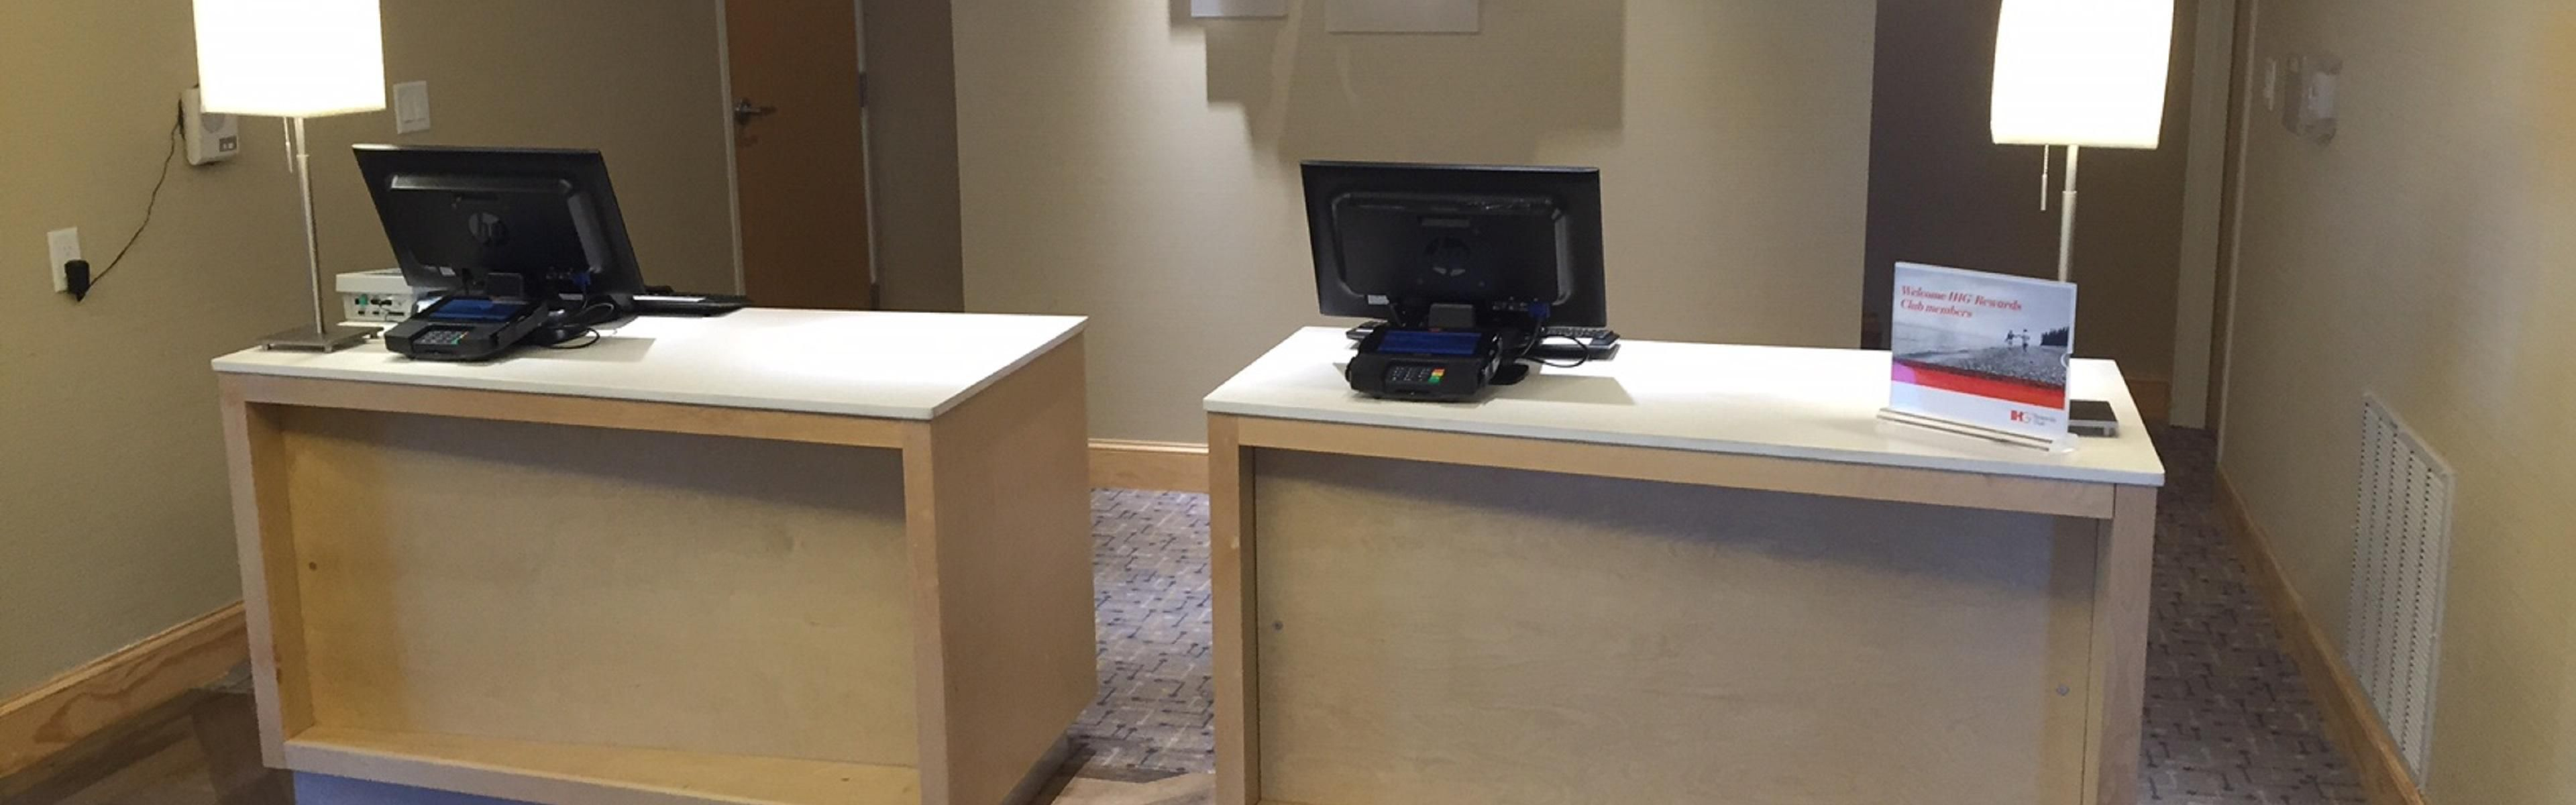 Holiday Inn Express U0026 Suites San Antonio   Brooks City Base Hotel By IHG